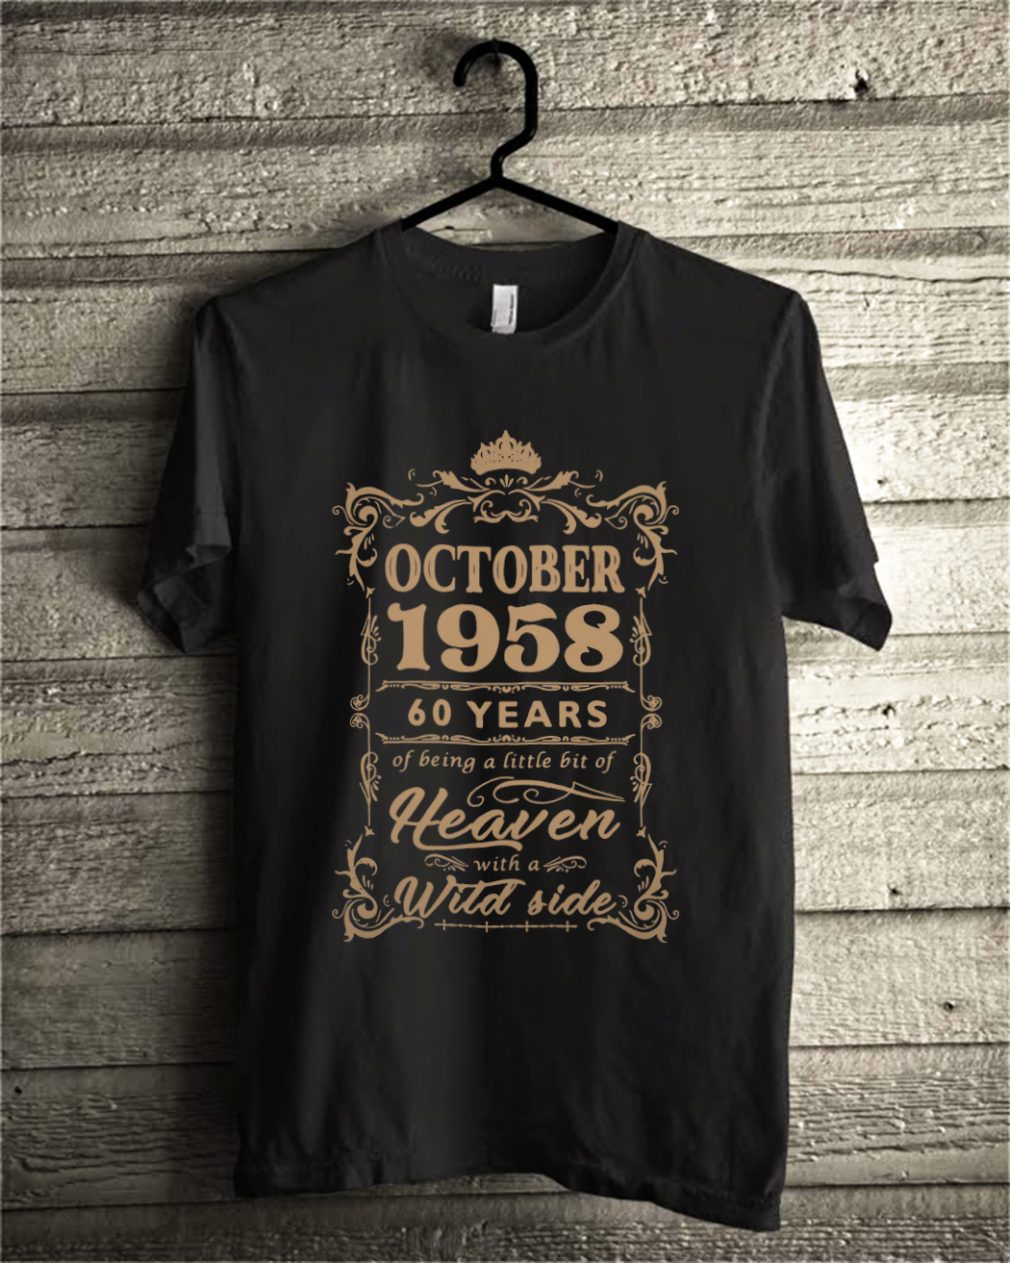 October 1958 60 years of being a little bit of heaven with a wild side shirt